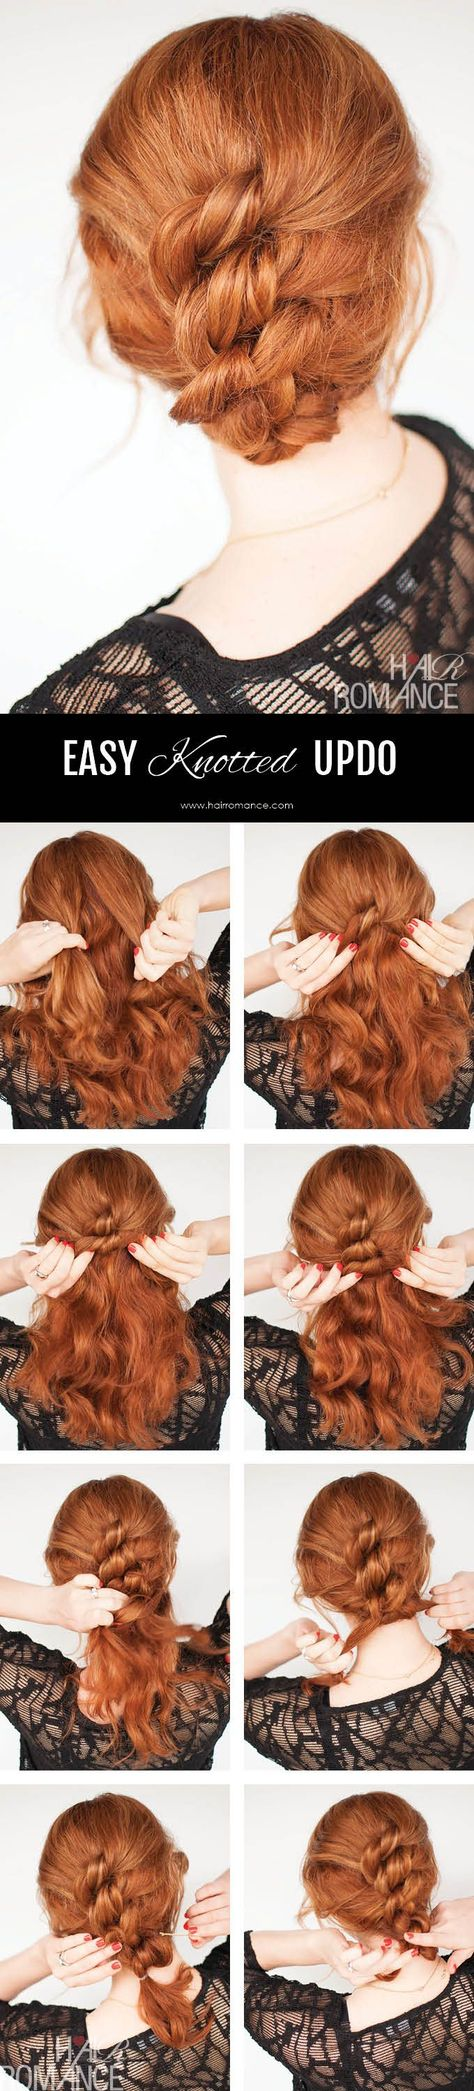 Hair Romance - Easy knotted hairstyle - click through for full tutorial